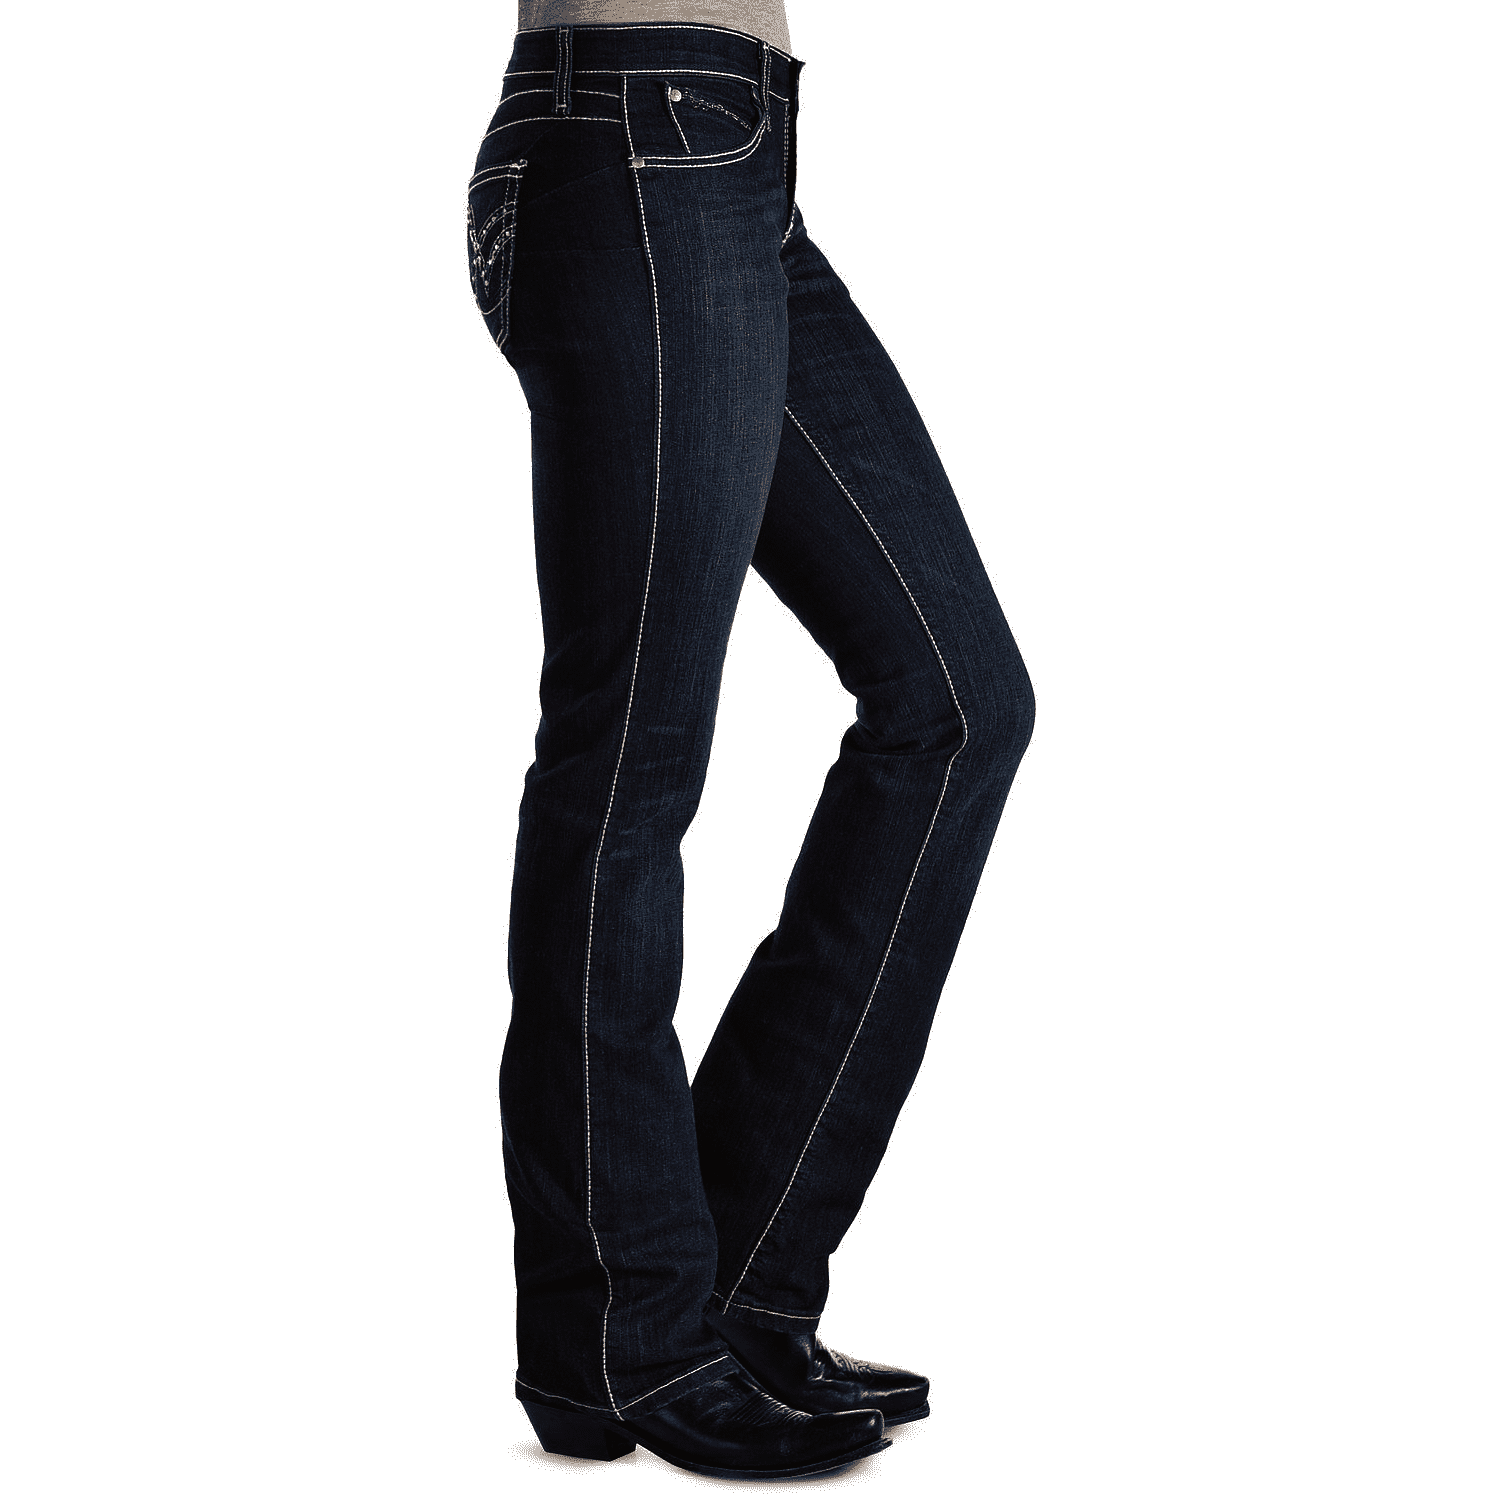 Wrangler women's Q Dark Wash Ultimate Riding With Booty Up Technology Jeans - CWesternwear